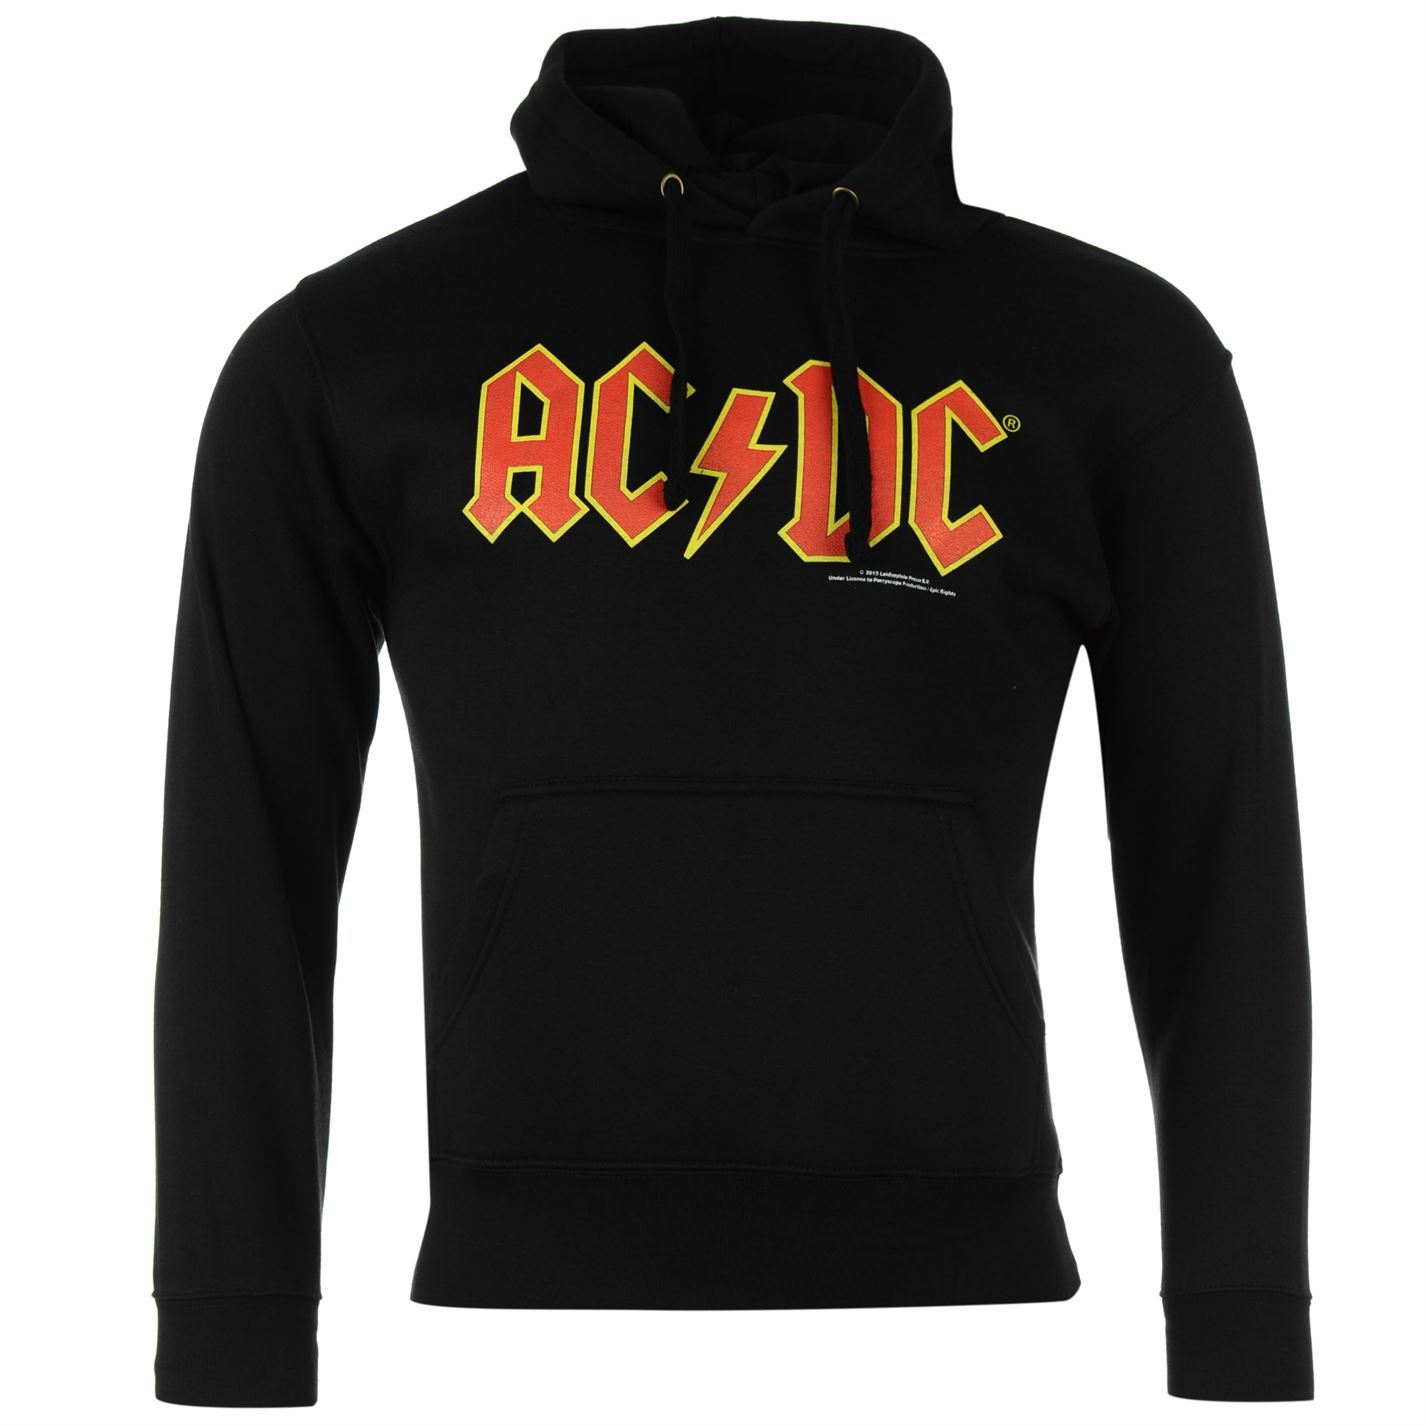 official mens ac dc graphic hoody long sleeve hooded. Black Bedroom Furniture Sets. Home Design Ideas